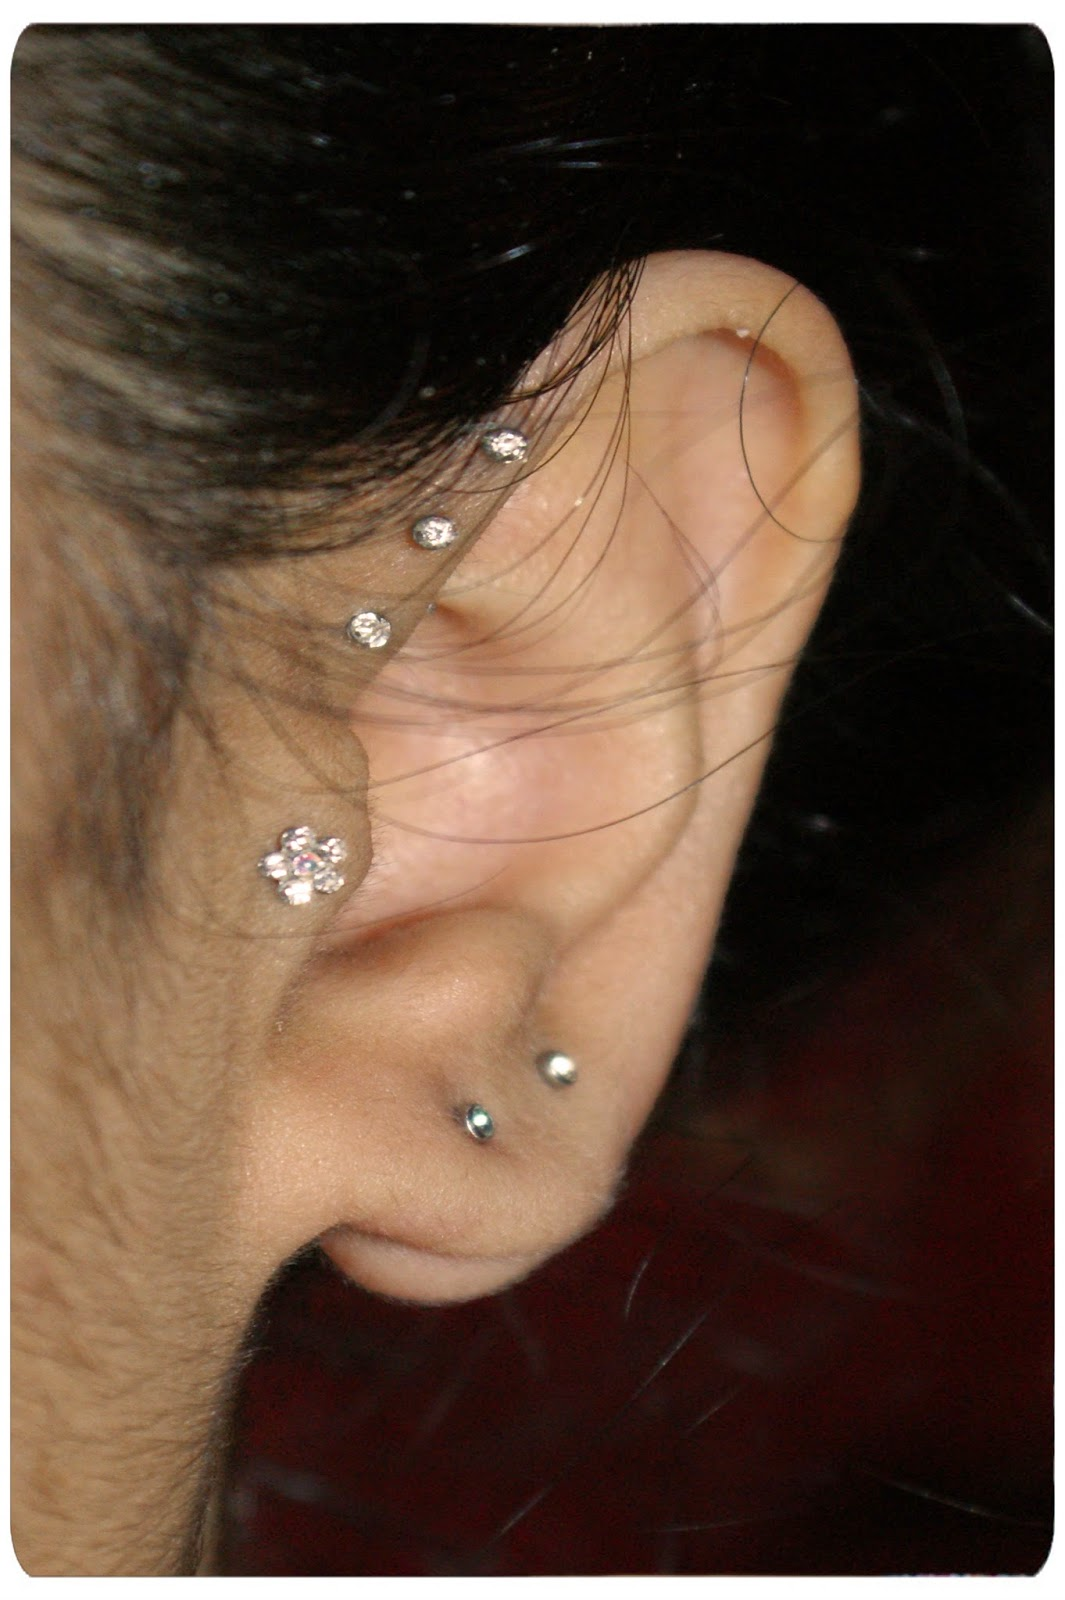 Earrings My Piercings Experiences And Advice Updated The